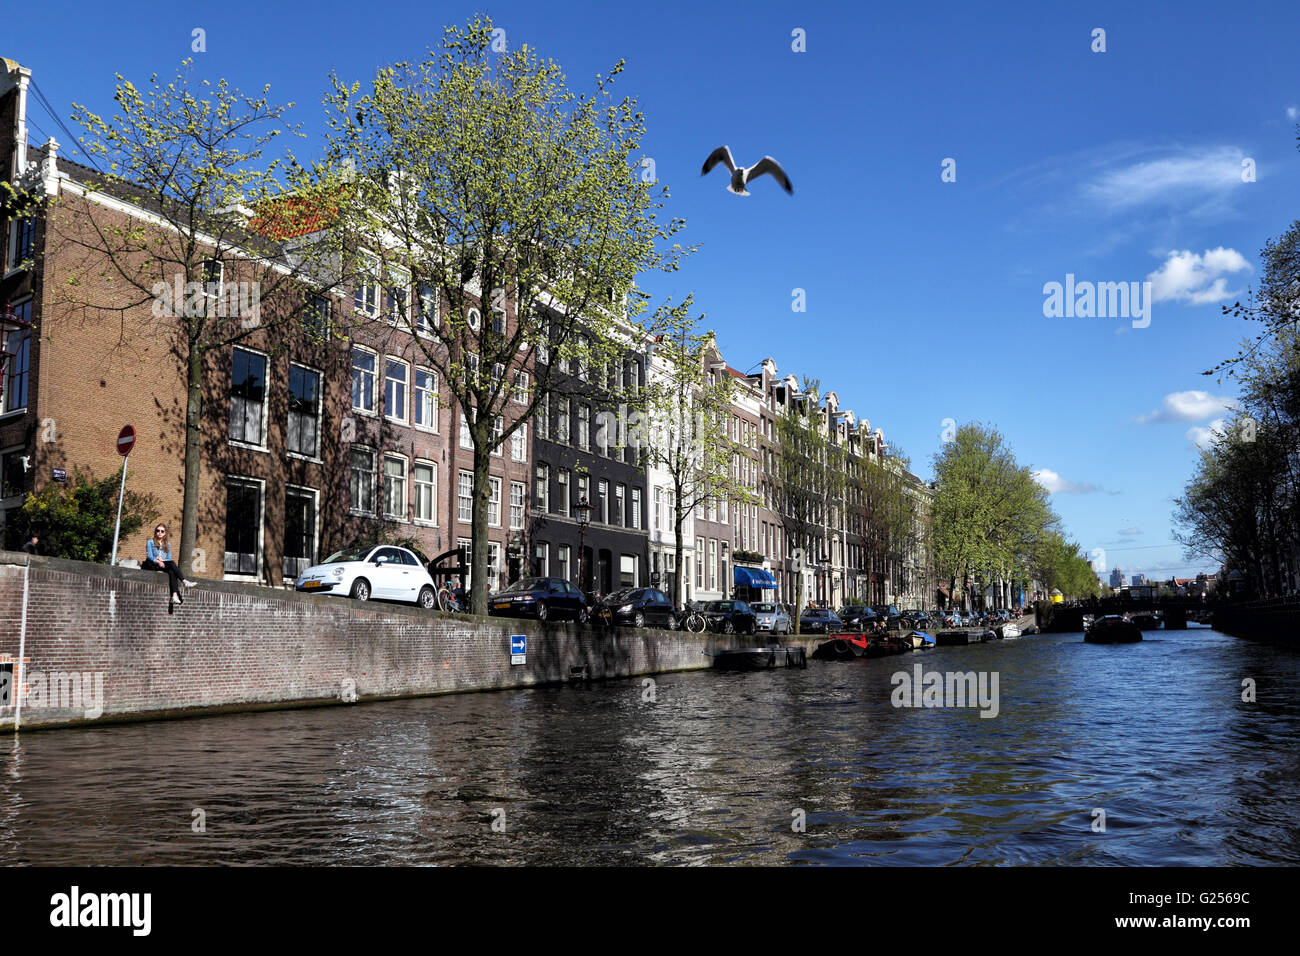 View on the Prinsengracht in Amsterdam, Netherlands, Europe. - Stock Image